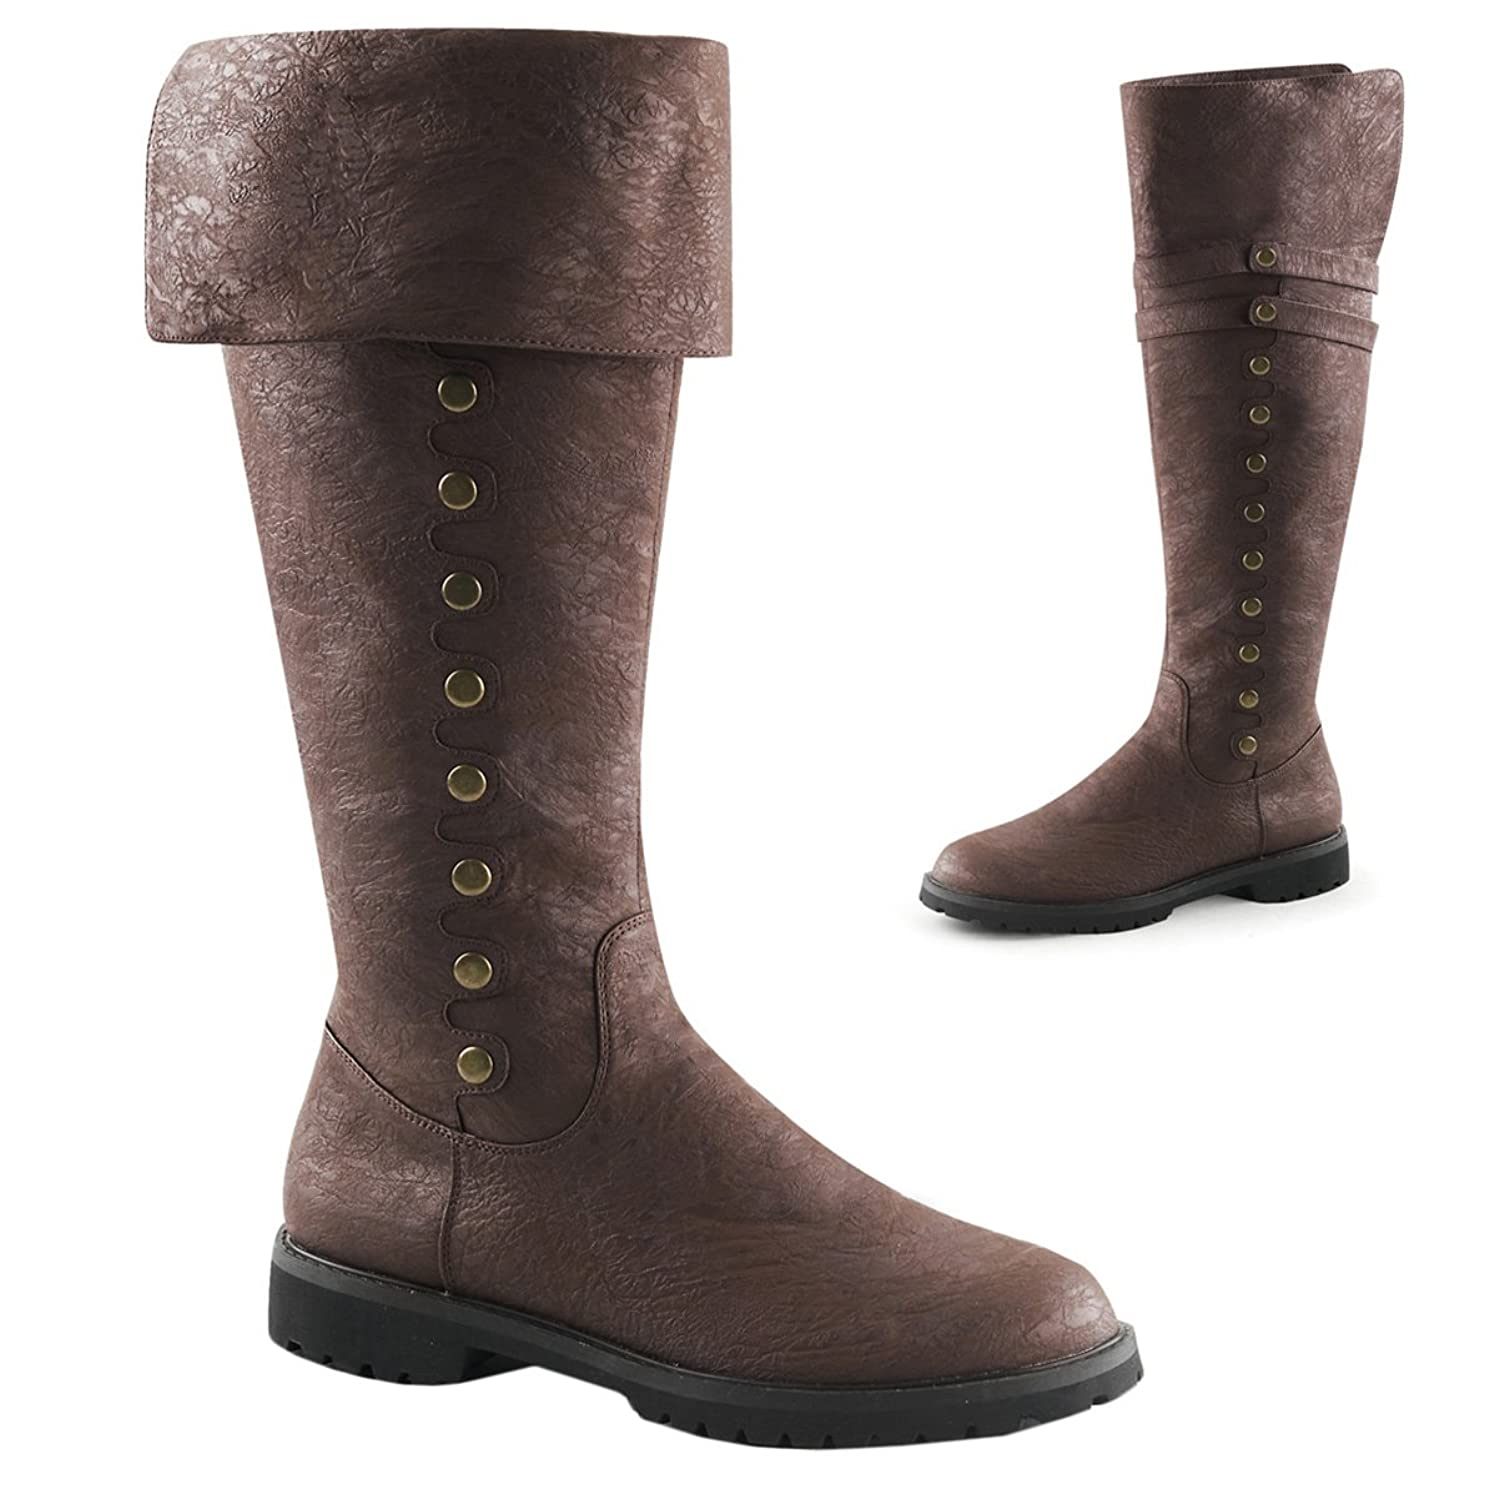 ... Men's Brown Distressed Knee-High Cuffs Gold Buttons Pirate Boots